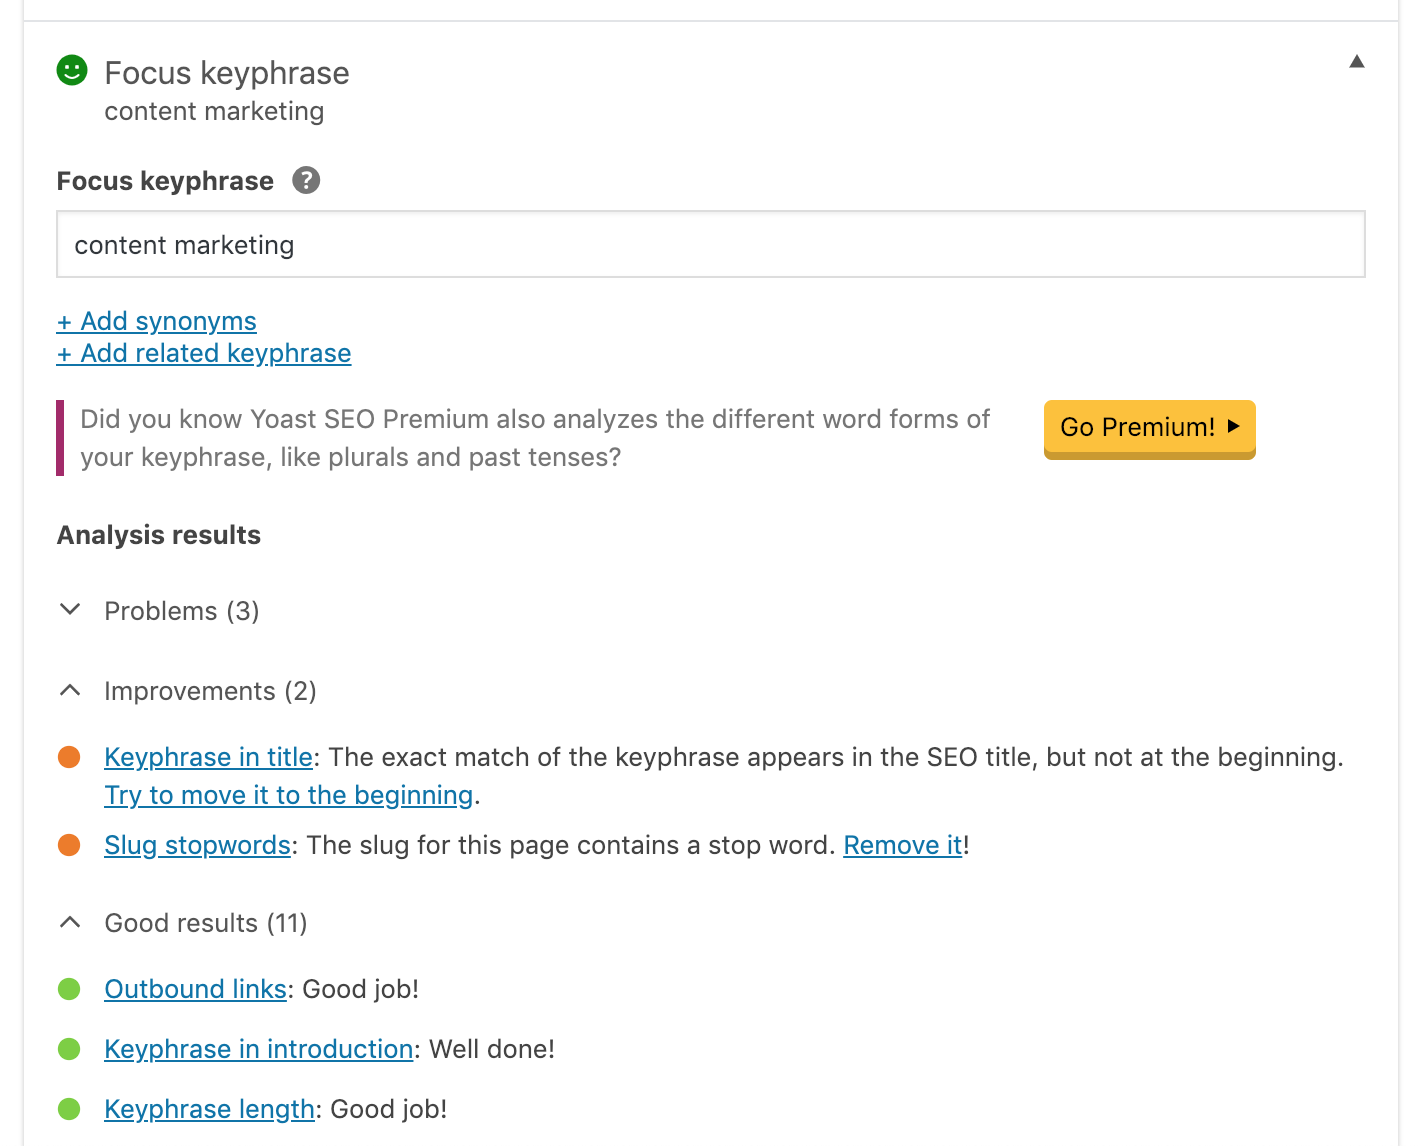 5 Free Tools to Help You Write Better Blog Content | Daniel Tay